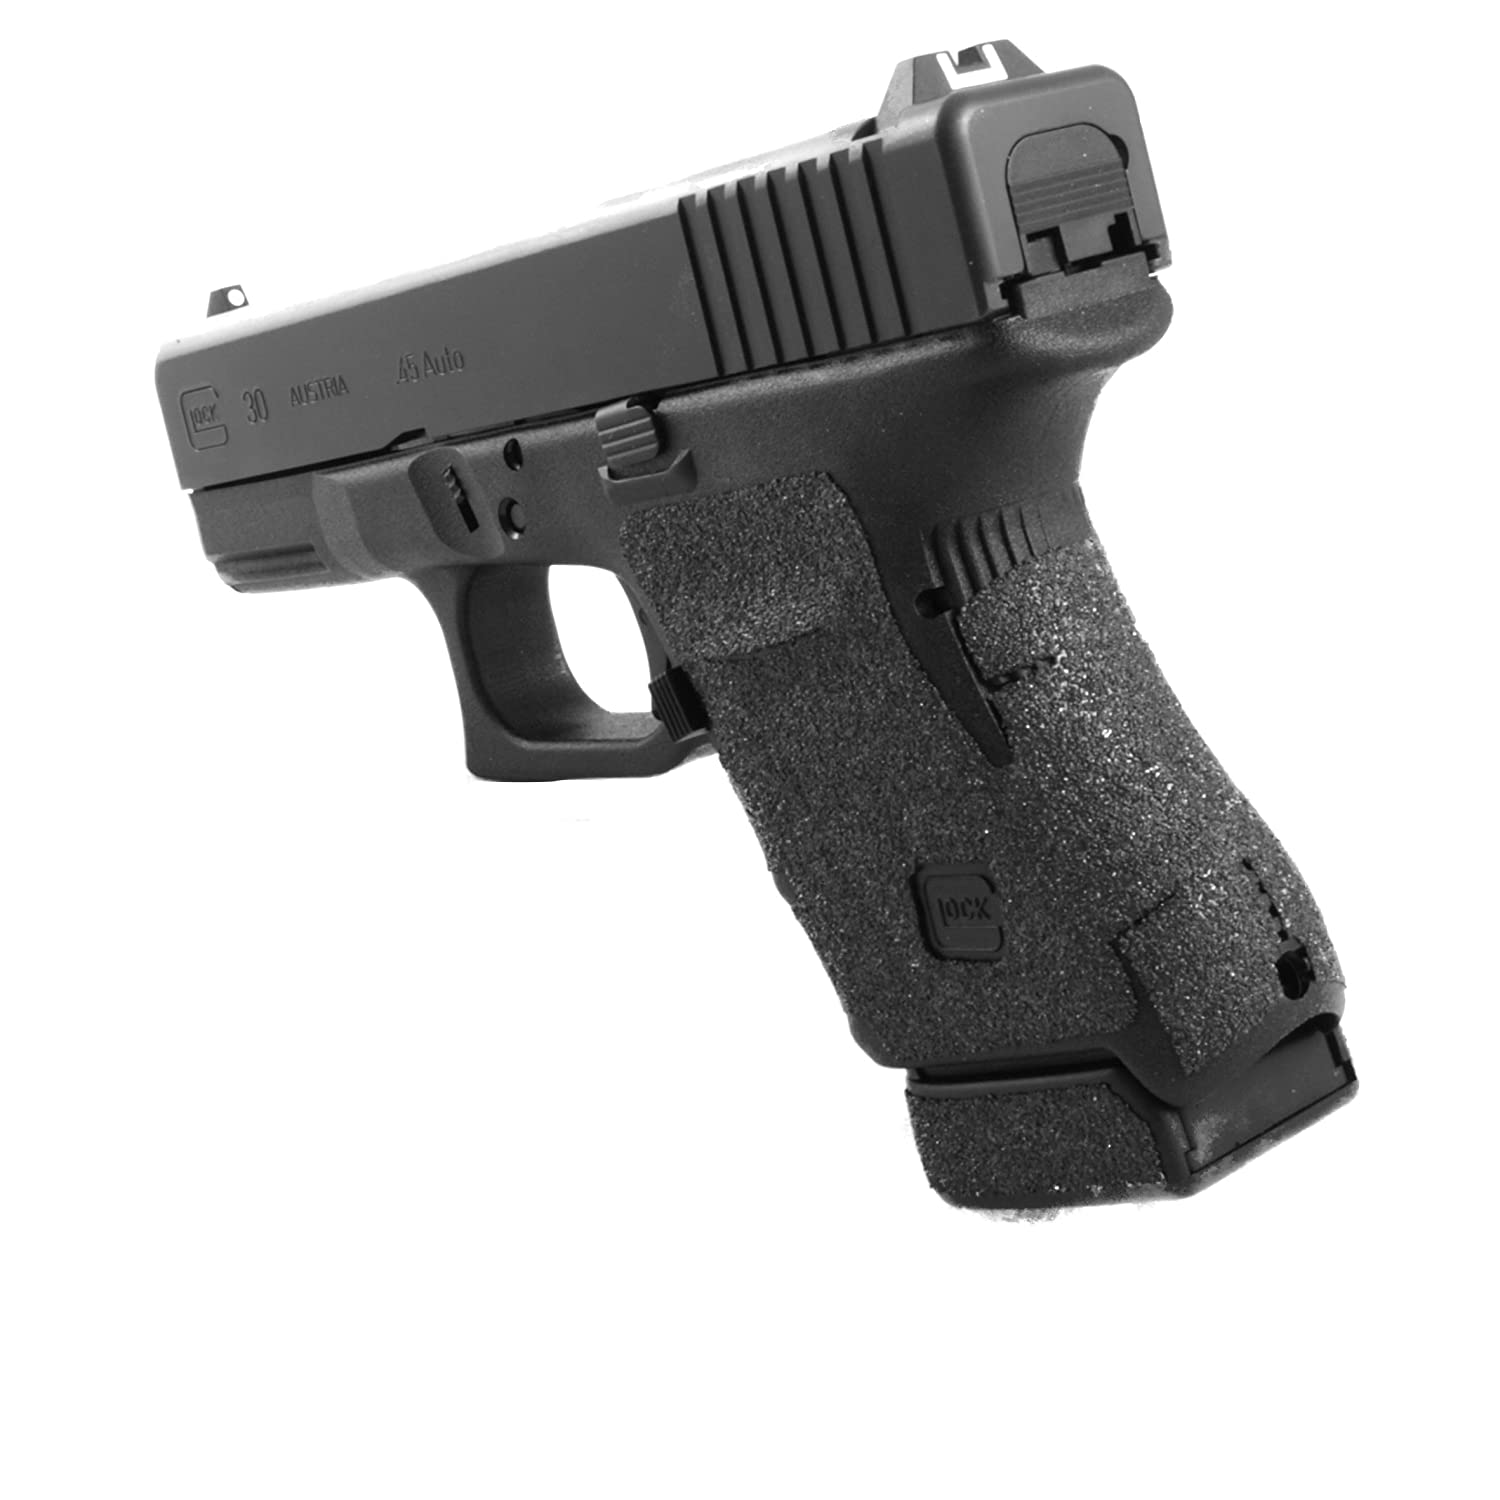 Amazon.com : TALON Grip for Glock 29SF, 30SF, 30S, 36 (Pre Gen4 ...